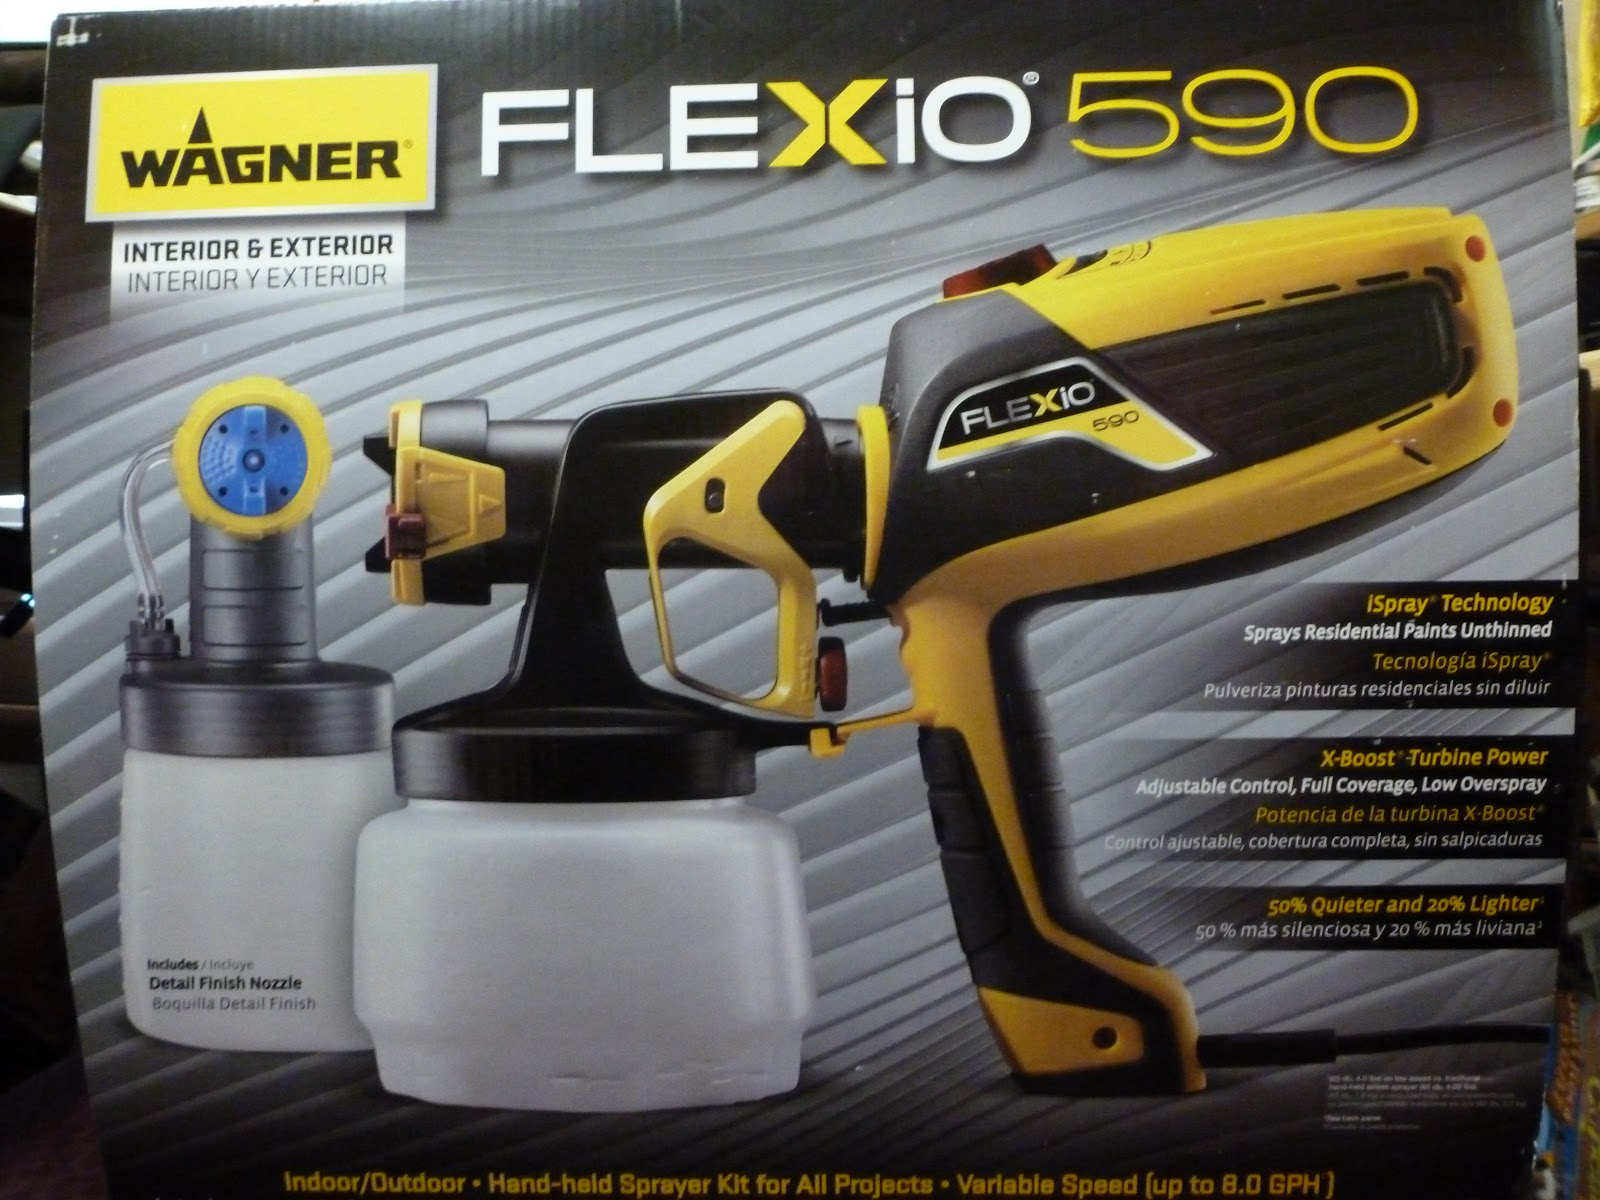 Wagner Flexio At The Fence Wagner Hand Held Flexio 590 Sprayer Kit